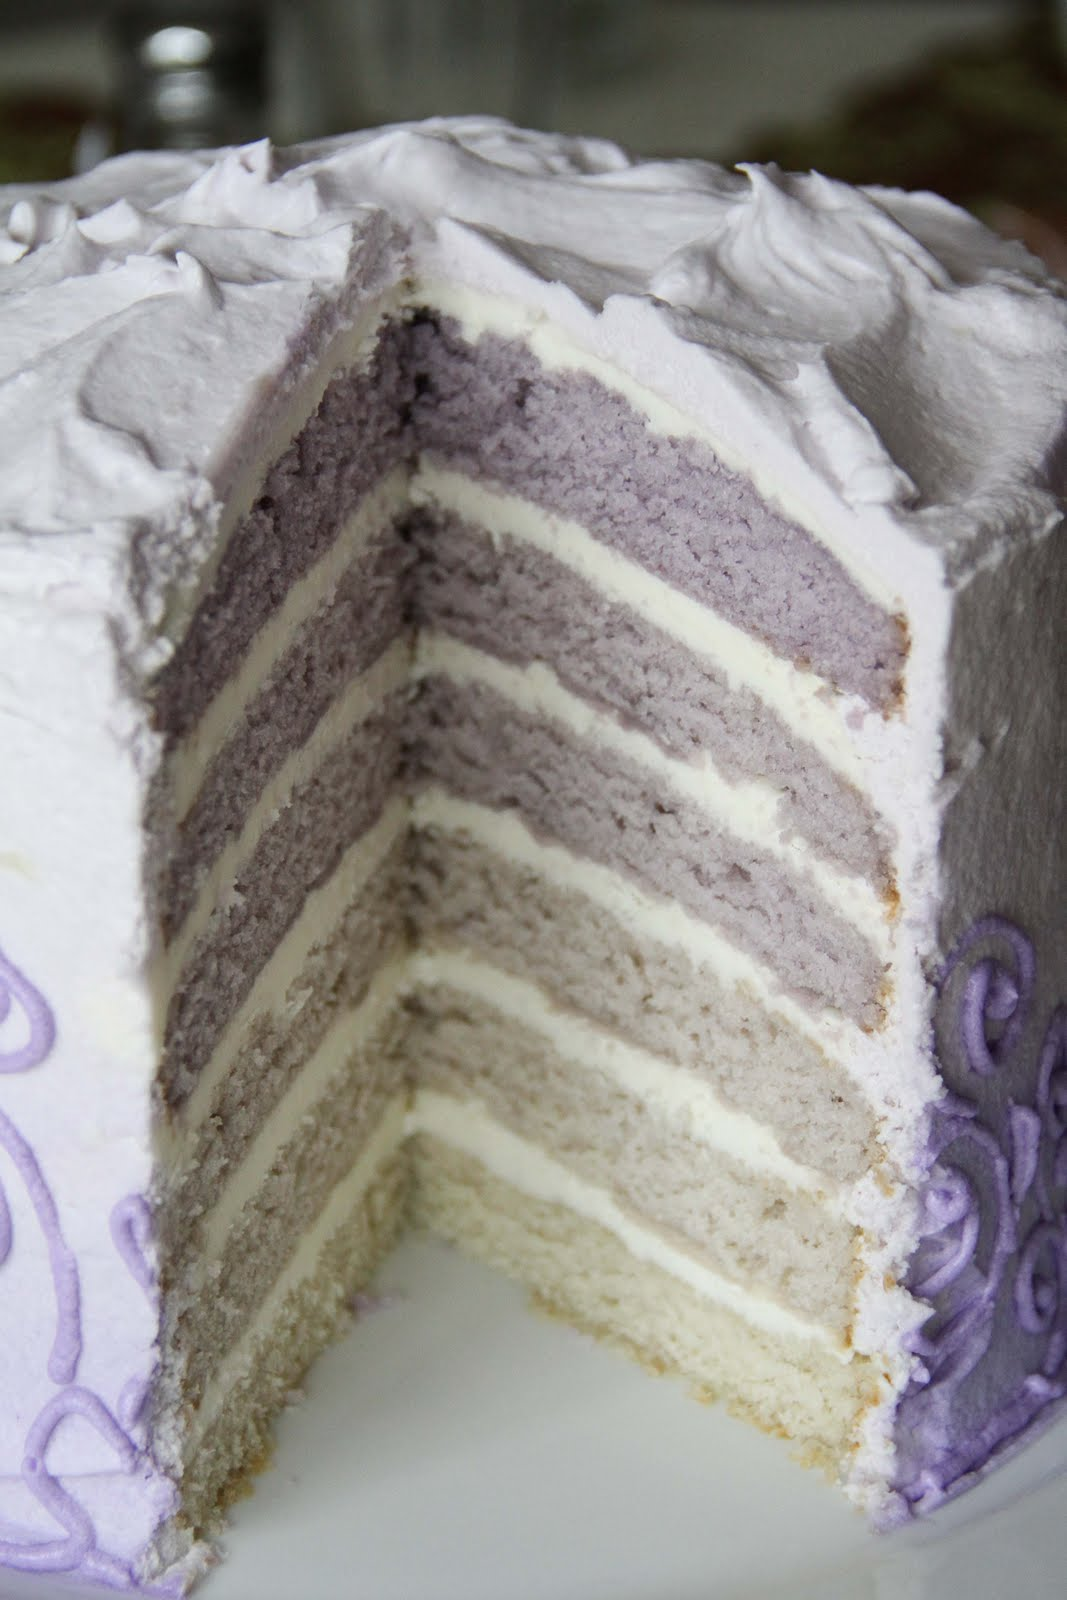 Layers Cake Design Studio : MyStudio: Six Layer Cake